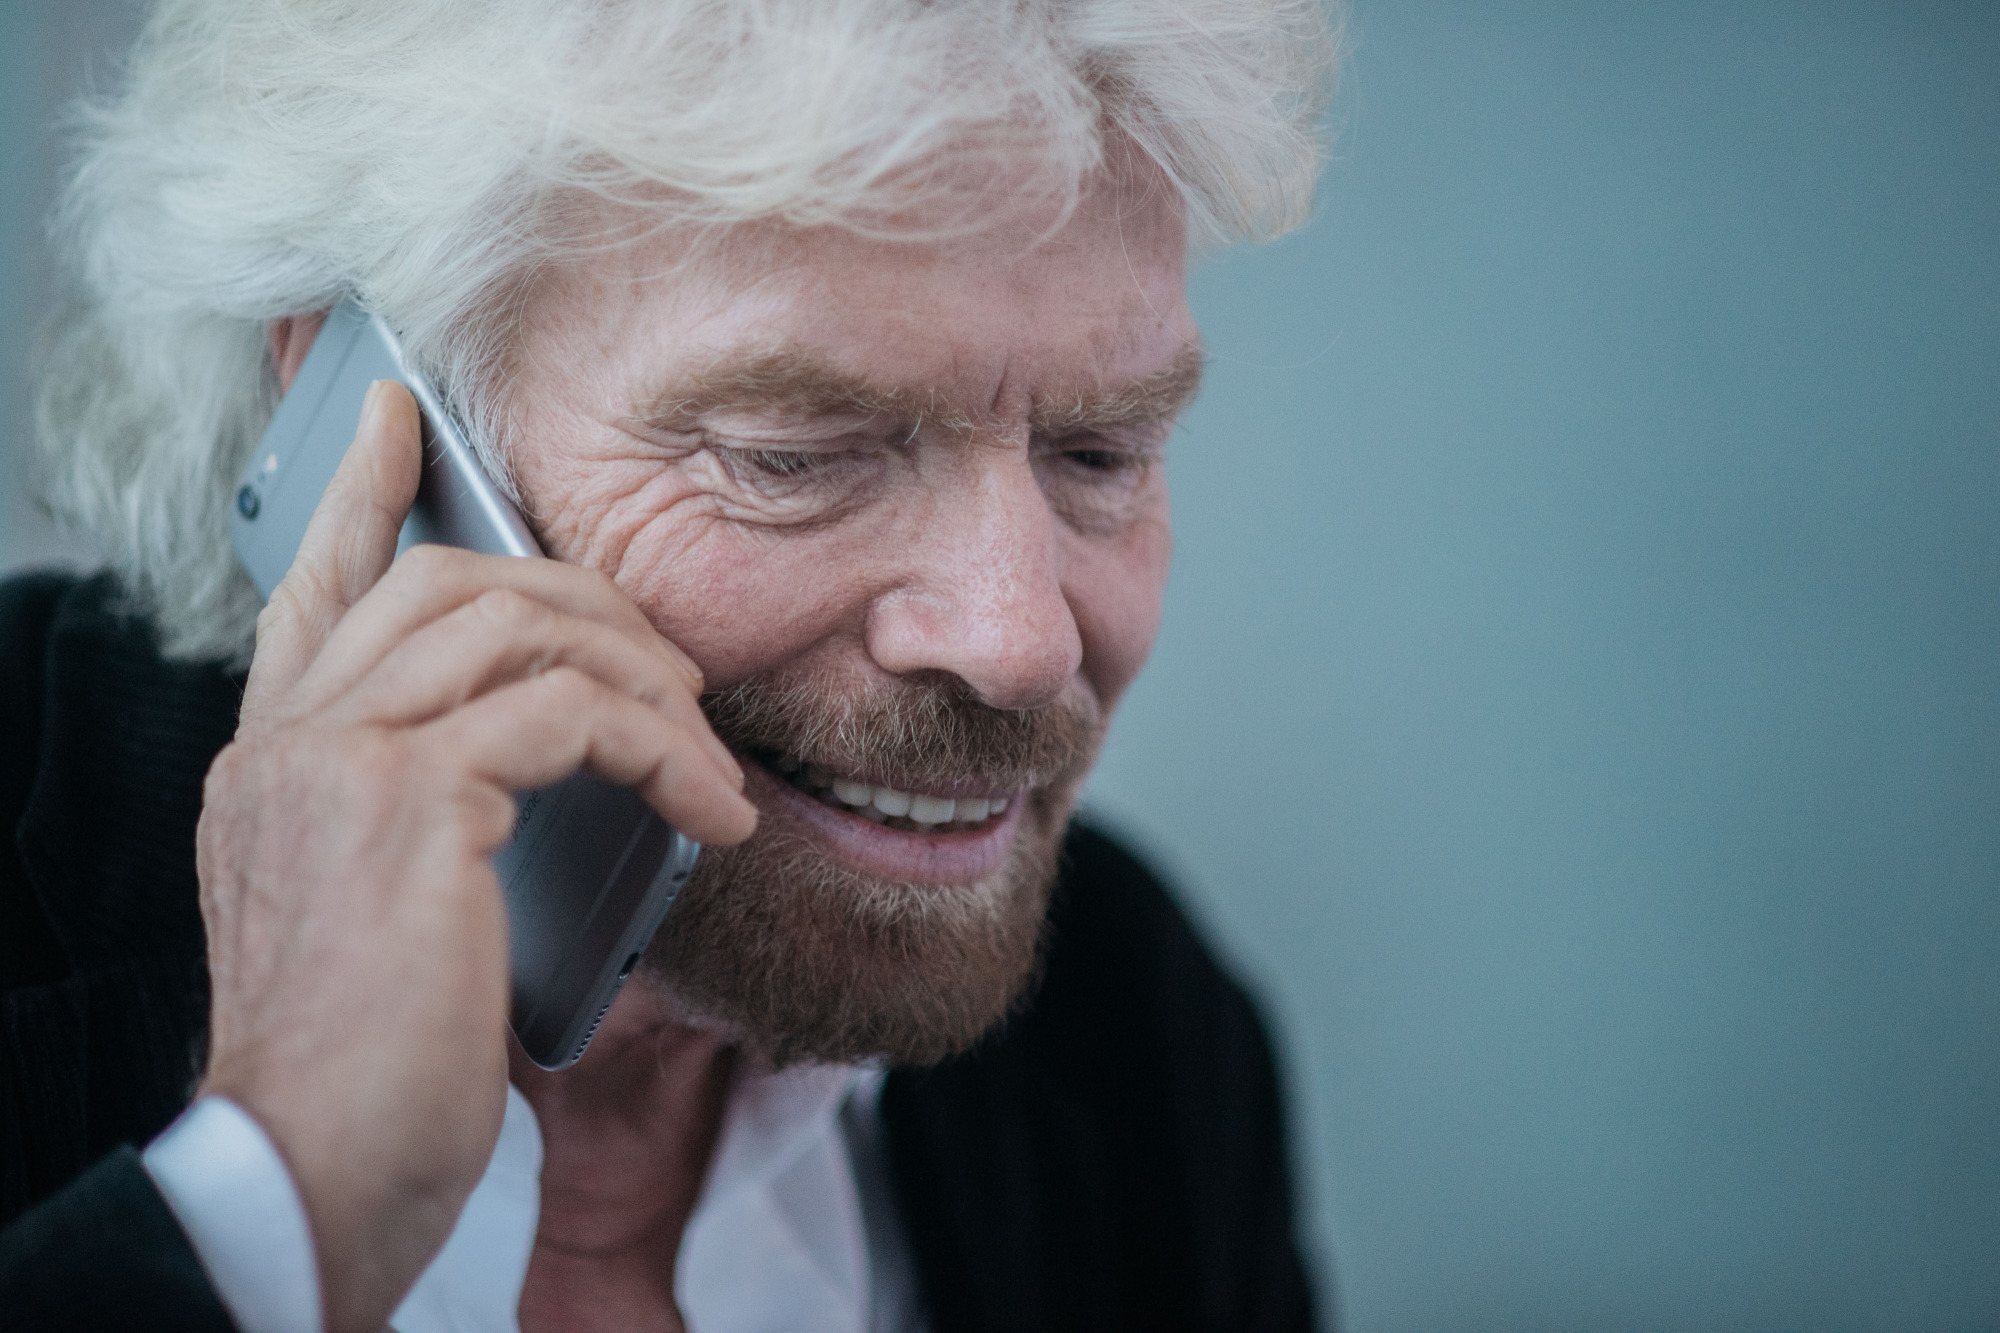 Billionaire Richard Branson, founder of Virgin Group Ltd., speaks on a smartphone during an interview in Hong Kong on Wednesday. Virgin Galactic will conduct powered flights with new SpaceShipTwo craft roughly every three weeks after its restart, Branson said in the interview. | BLOOMBERG